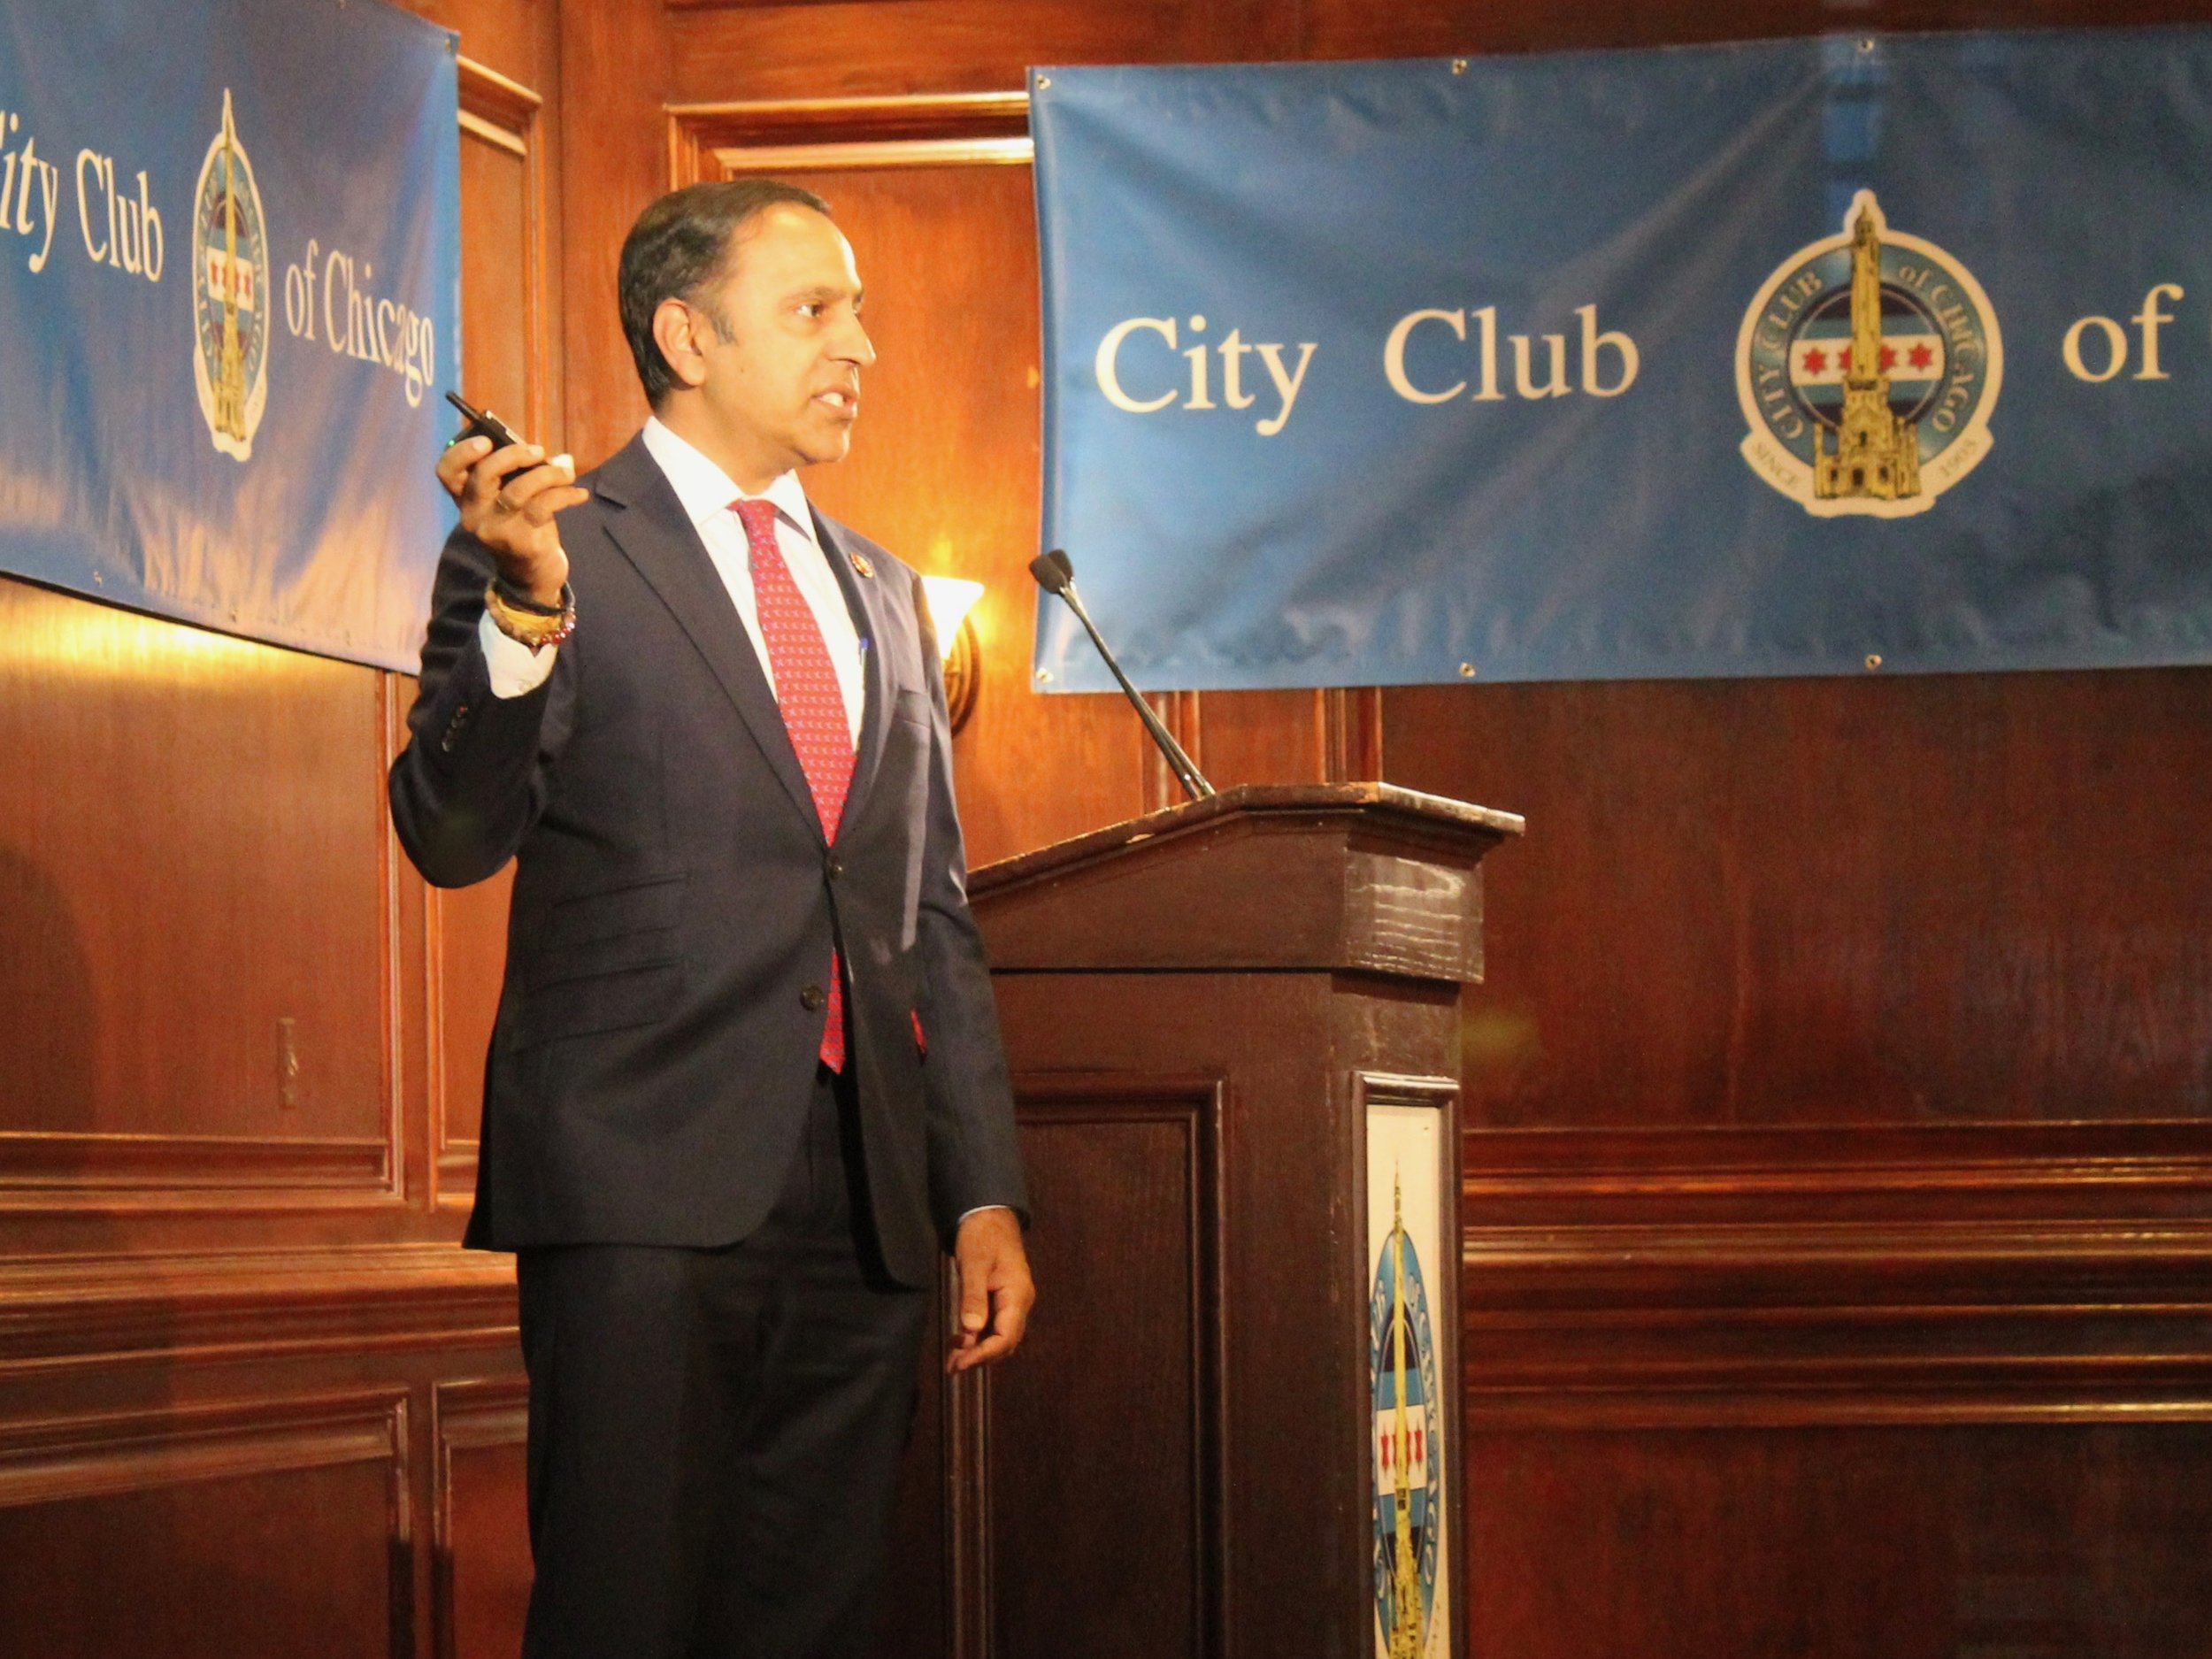 Congressman Raja Krishnamoorthi discusses teen vaping at the City Club of Chicago. (One Illinois/Ted Cox)